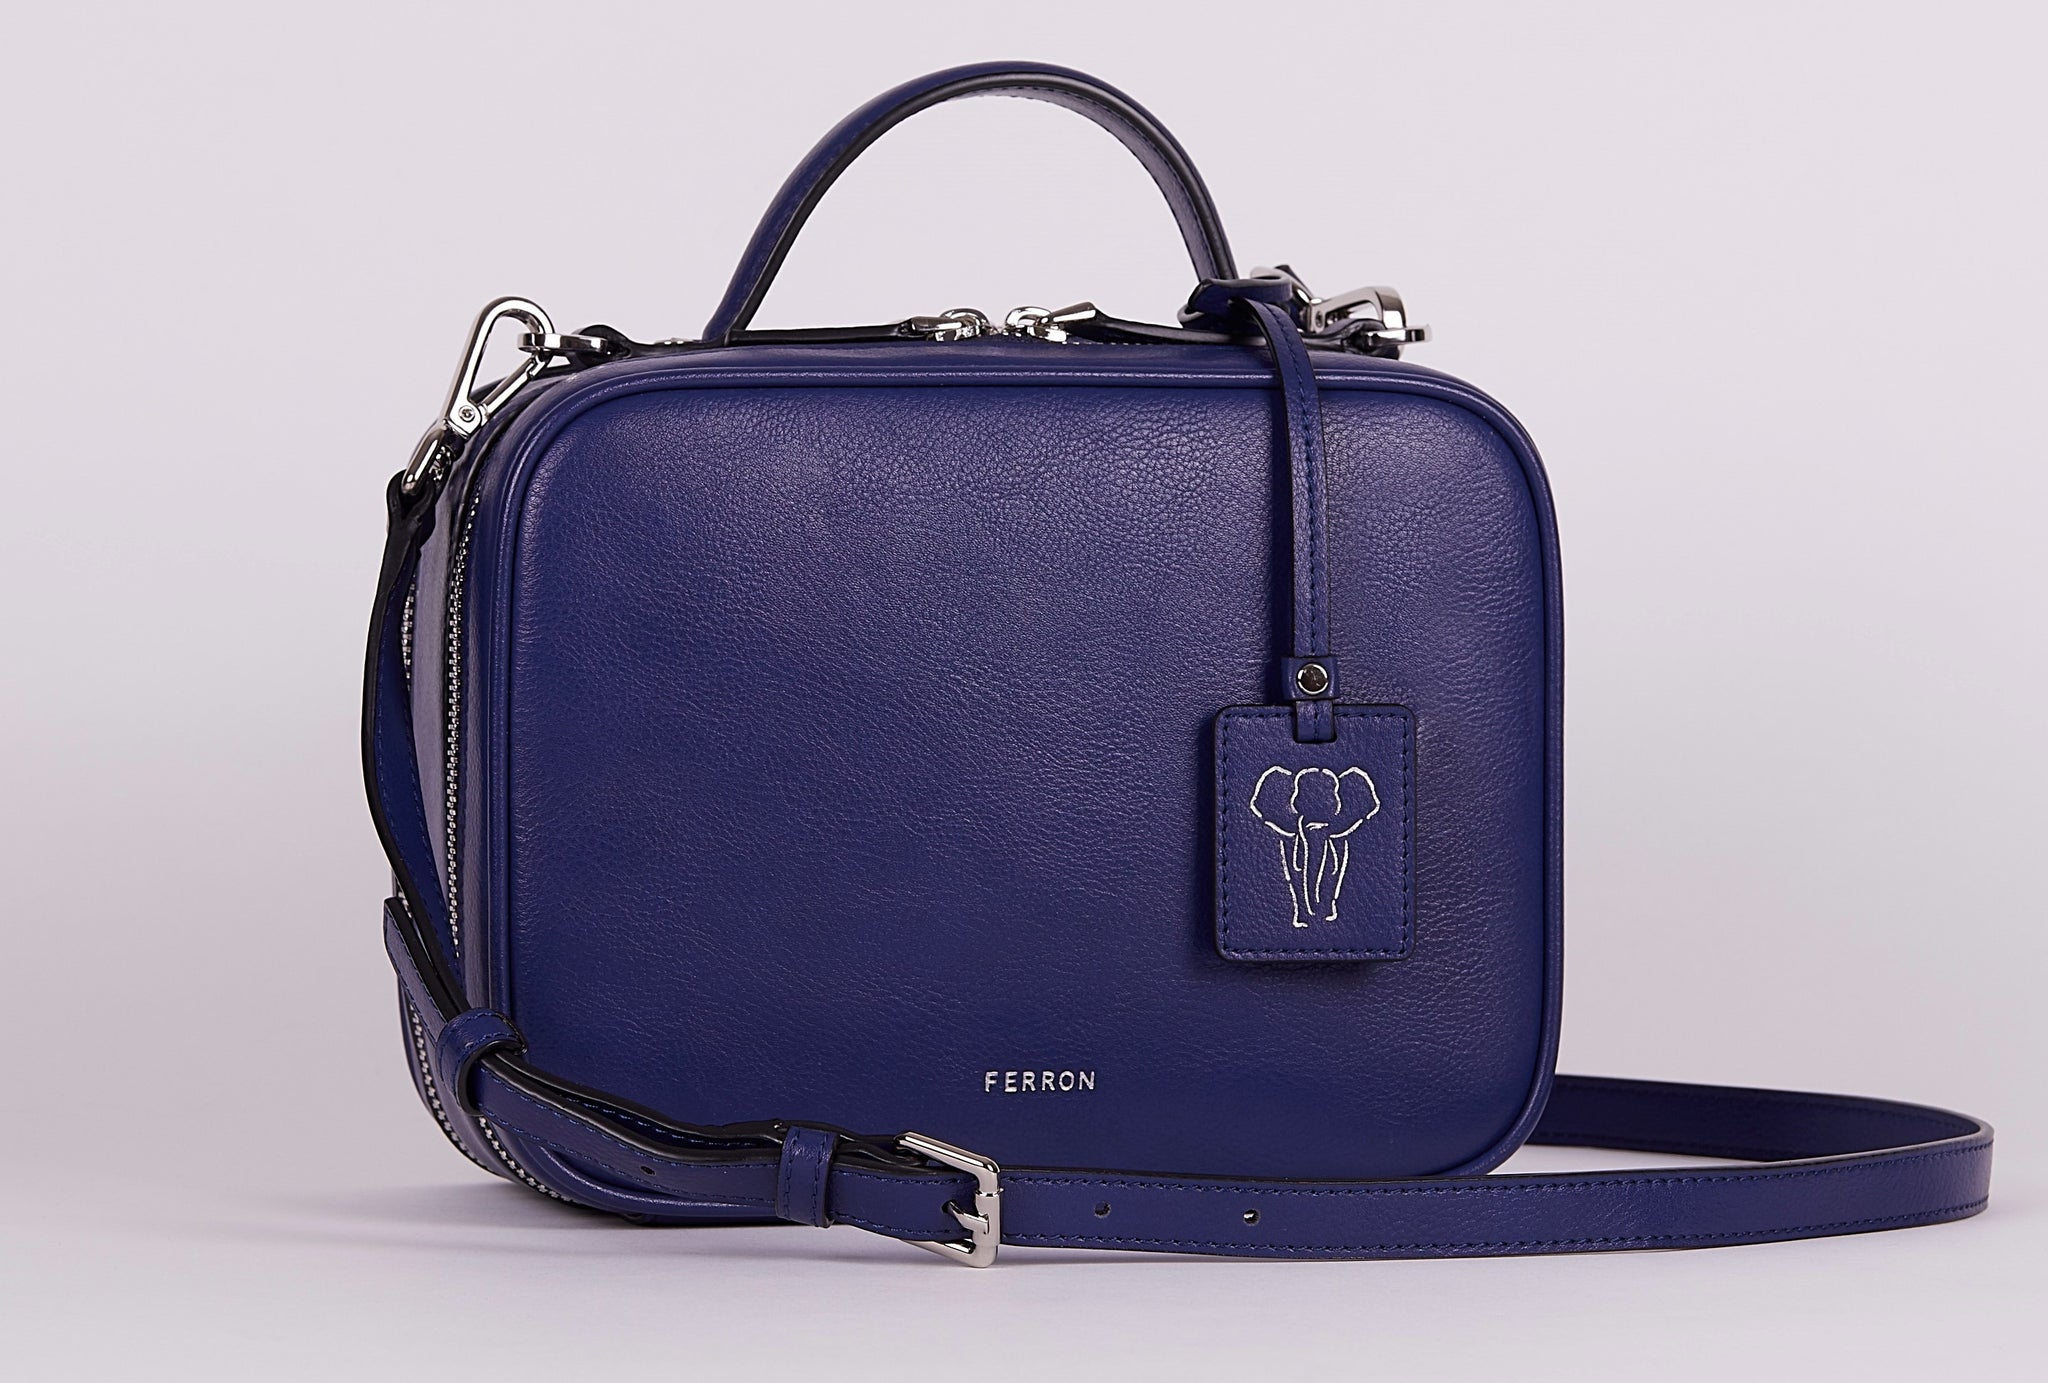 FERRON Vegan Signature Crossbody bag in blue with adjustable and detachable straps